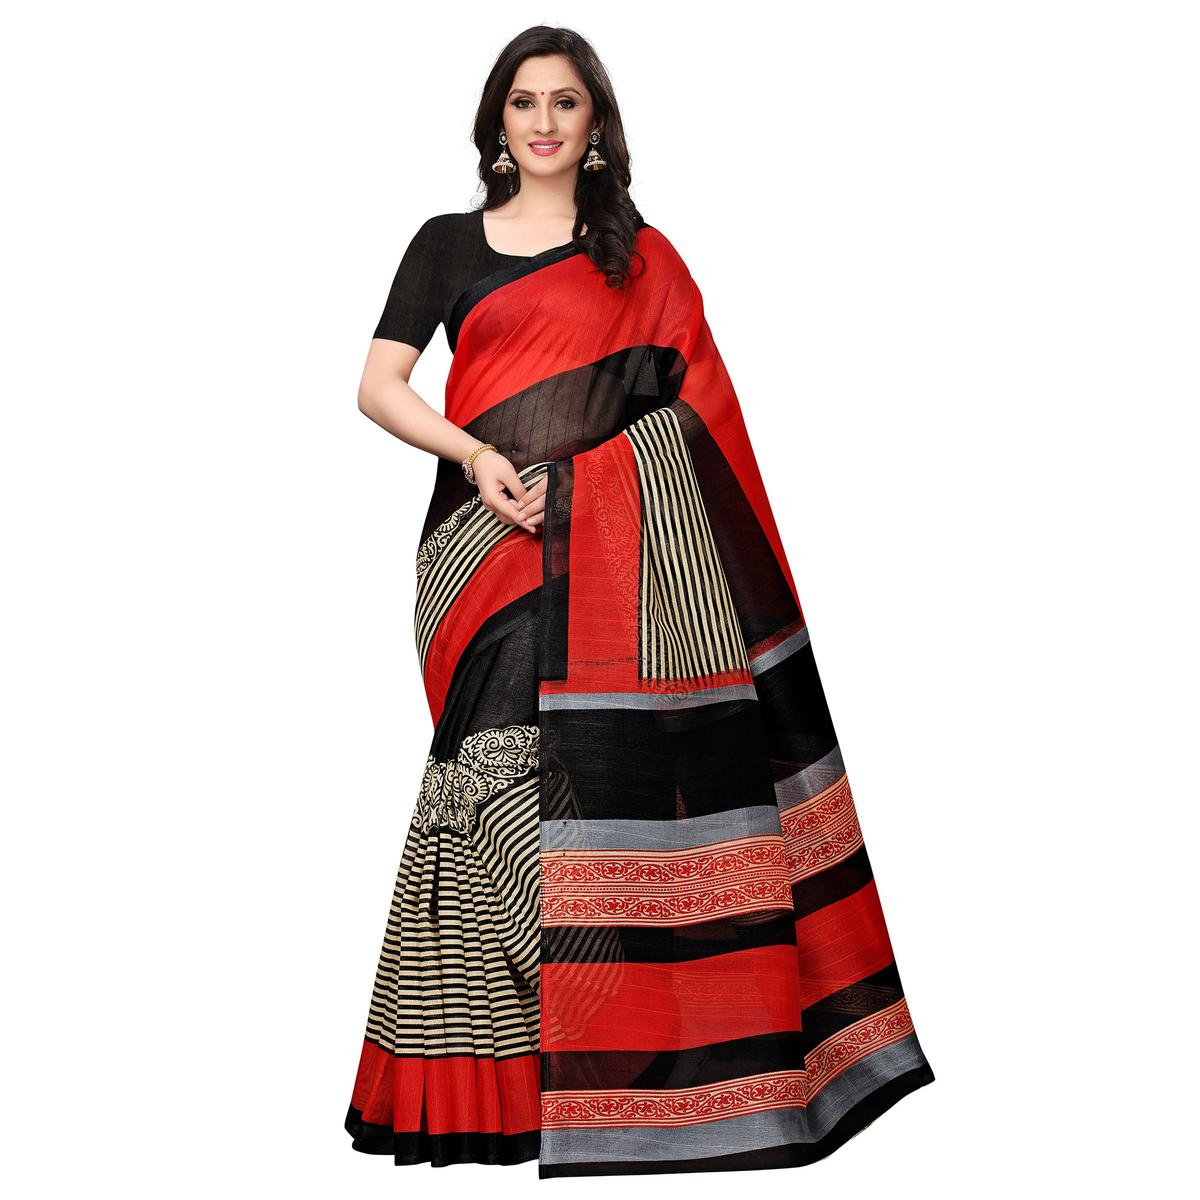 Radiant Red-Black Colored Casual Printed Bhagalpuri Silk Saree